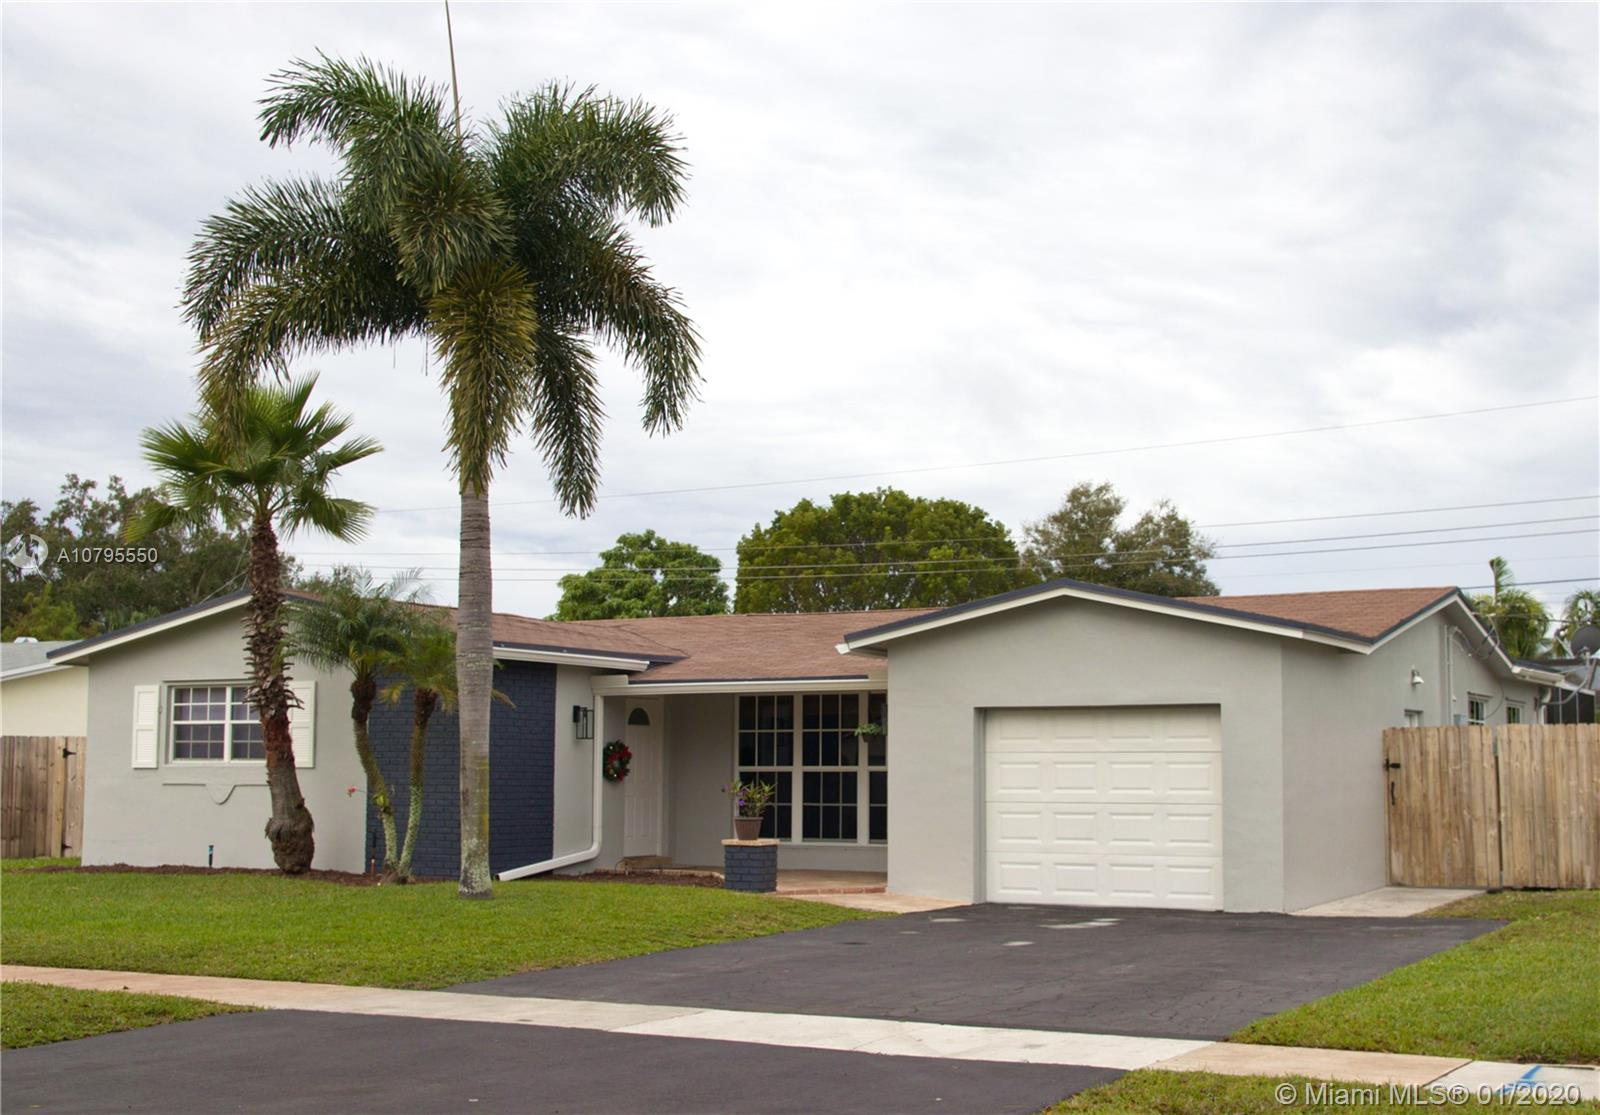 Gorgeous 3/2 Recently updated located in the heart of a well desired neighborhood in Cooper City. Fully fenced in back yard with plenty of room for a Boat/RV and NO HOA.  Unit Shows like a Model Bring your Pickiest client! Easy to Show Call LA